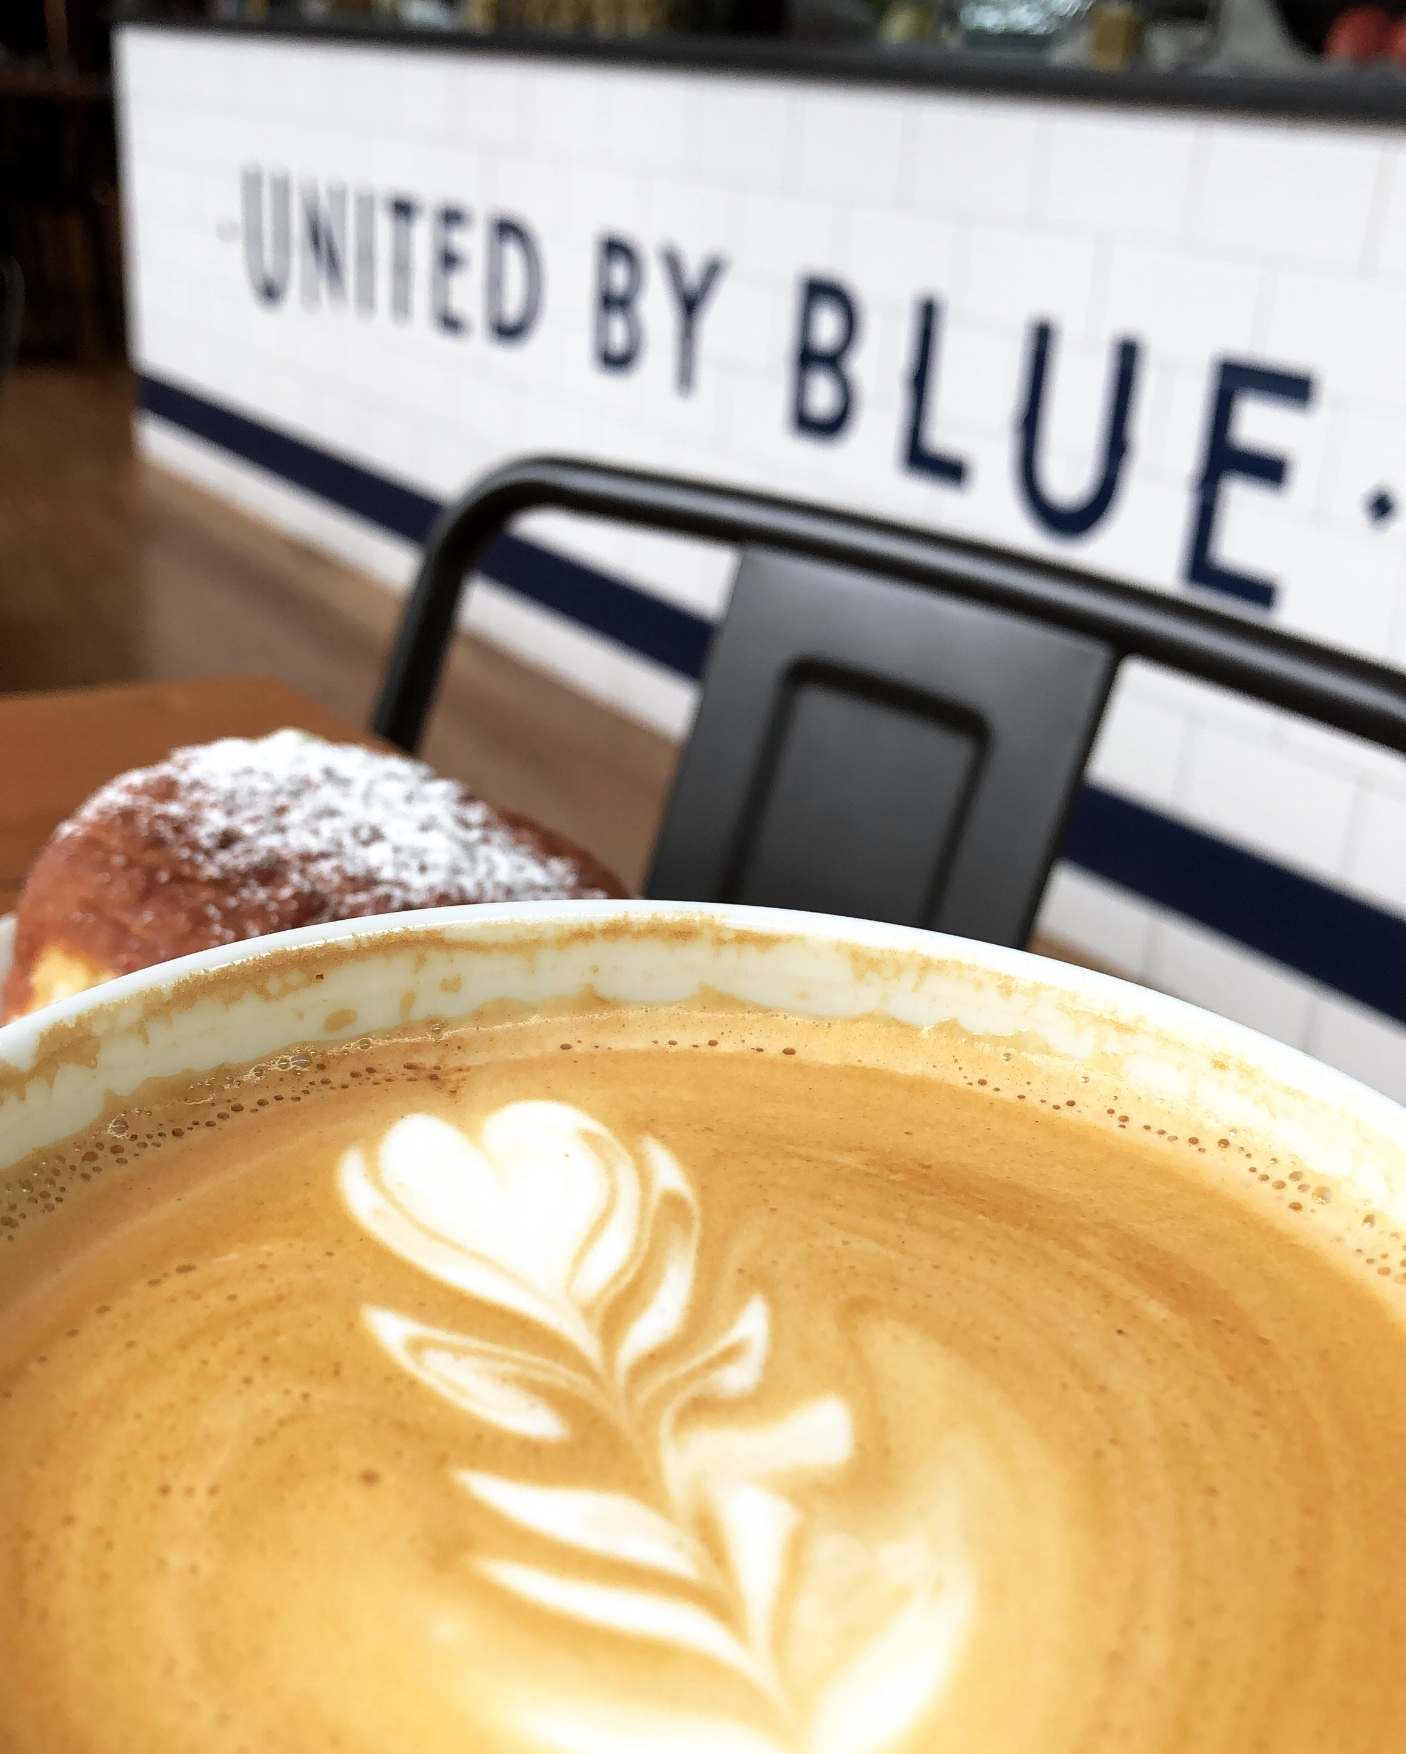 COFFEE - Amanda runs her life and business on coffee and can often be seen sitting at her fav local coffee shop, United By Blue working. Her drink of choice? Vanilla latte, hot or iced!